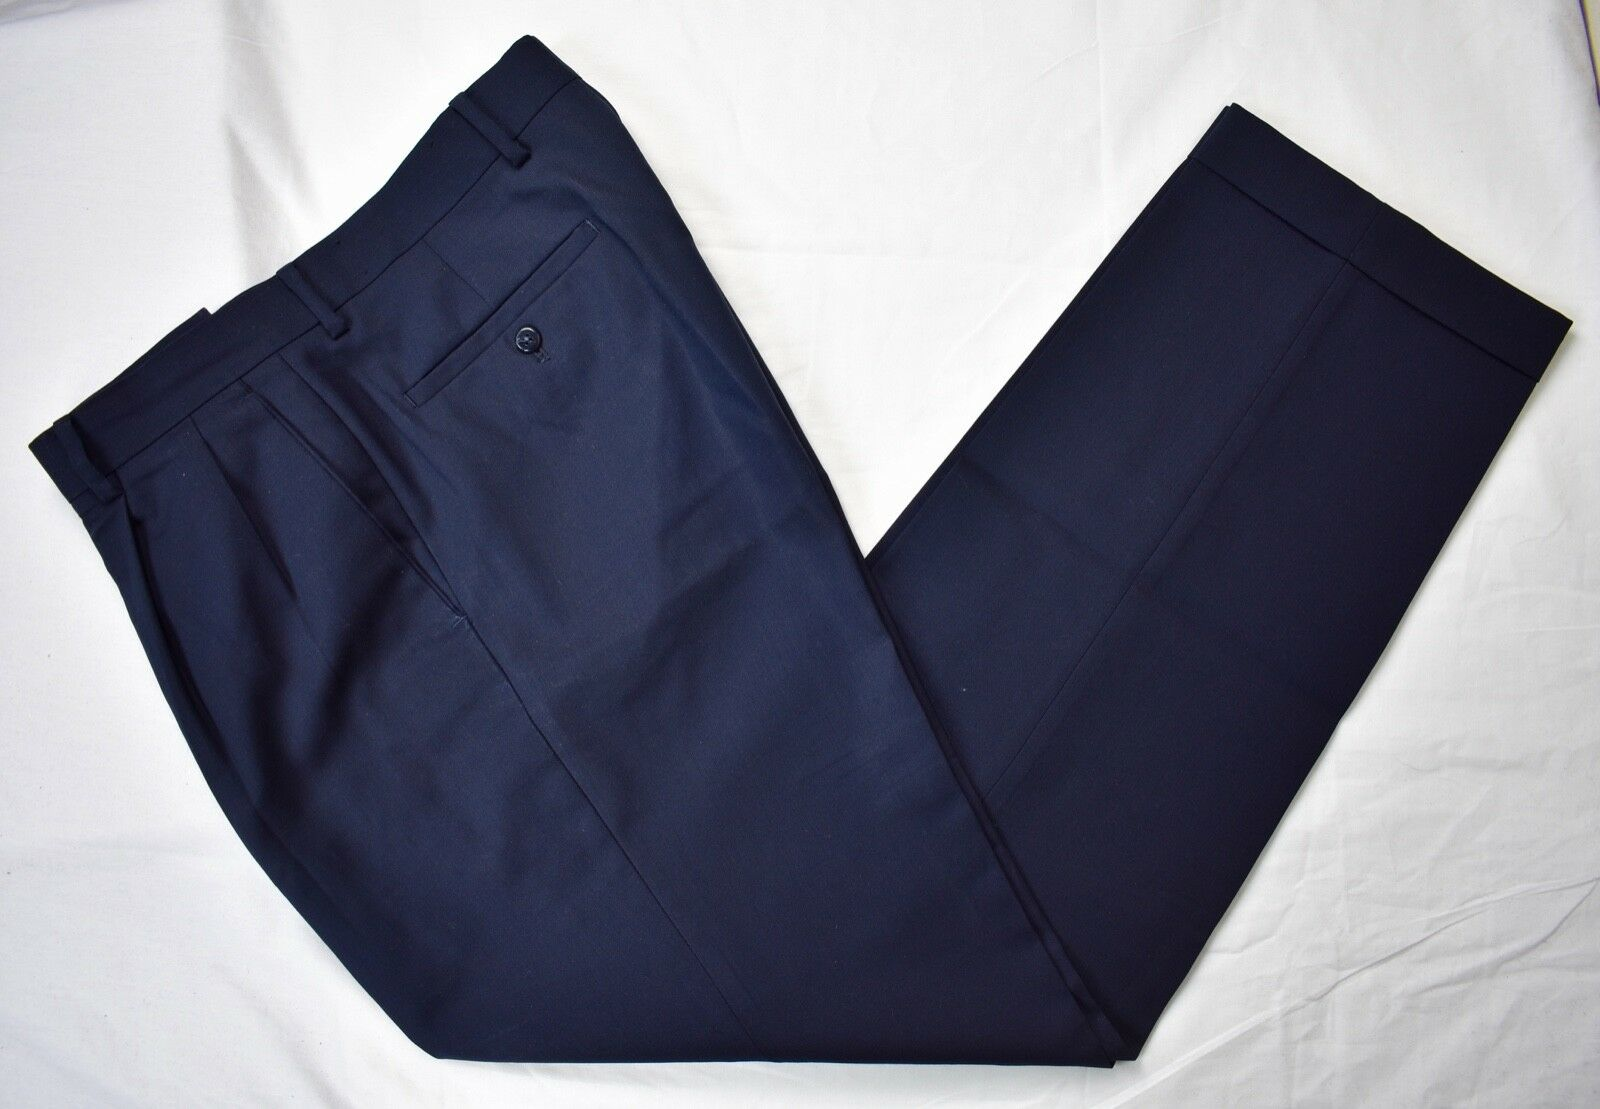 Louis Raphael Luxe Solid Navy bluee 100% Worsted Wool Dress Pleat Trousers 34x32